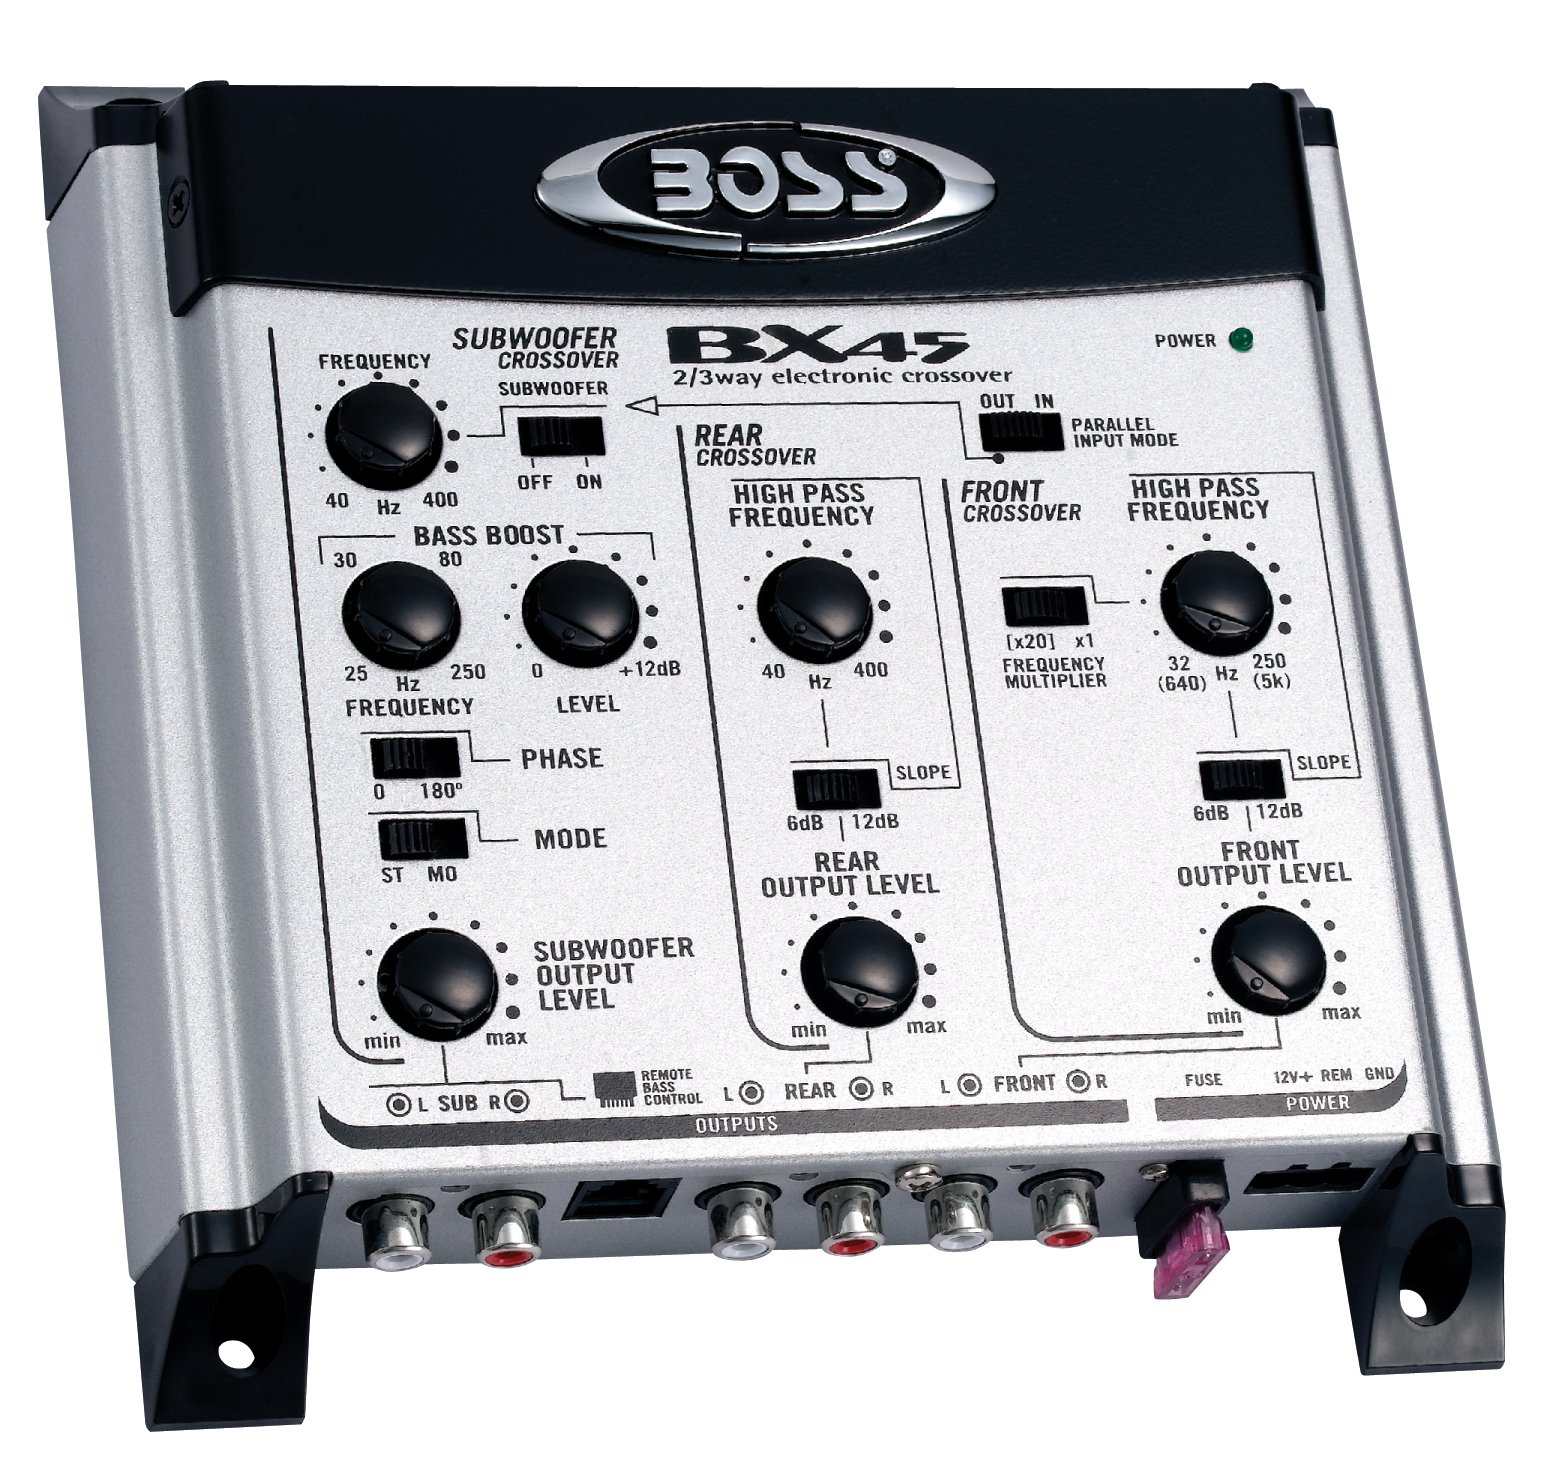 Boss Audio Bx45 2/3 Way Pre-amp Car Electronic Crossover Remote Subwoofer Control Variable High Pass Filter 40 Hz - 8 Khz Selectable Crossover Slopes, Selectable Phase Maximum Input Voltage 4.5 Volts